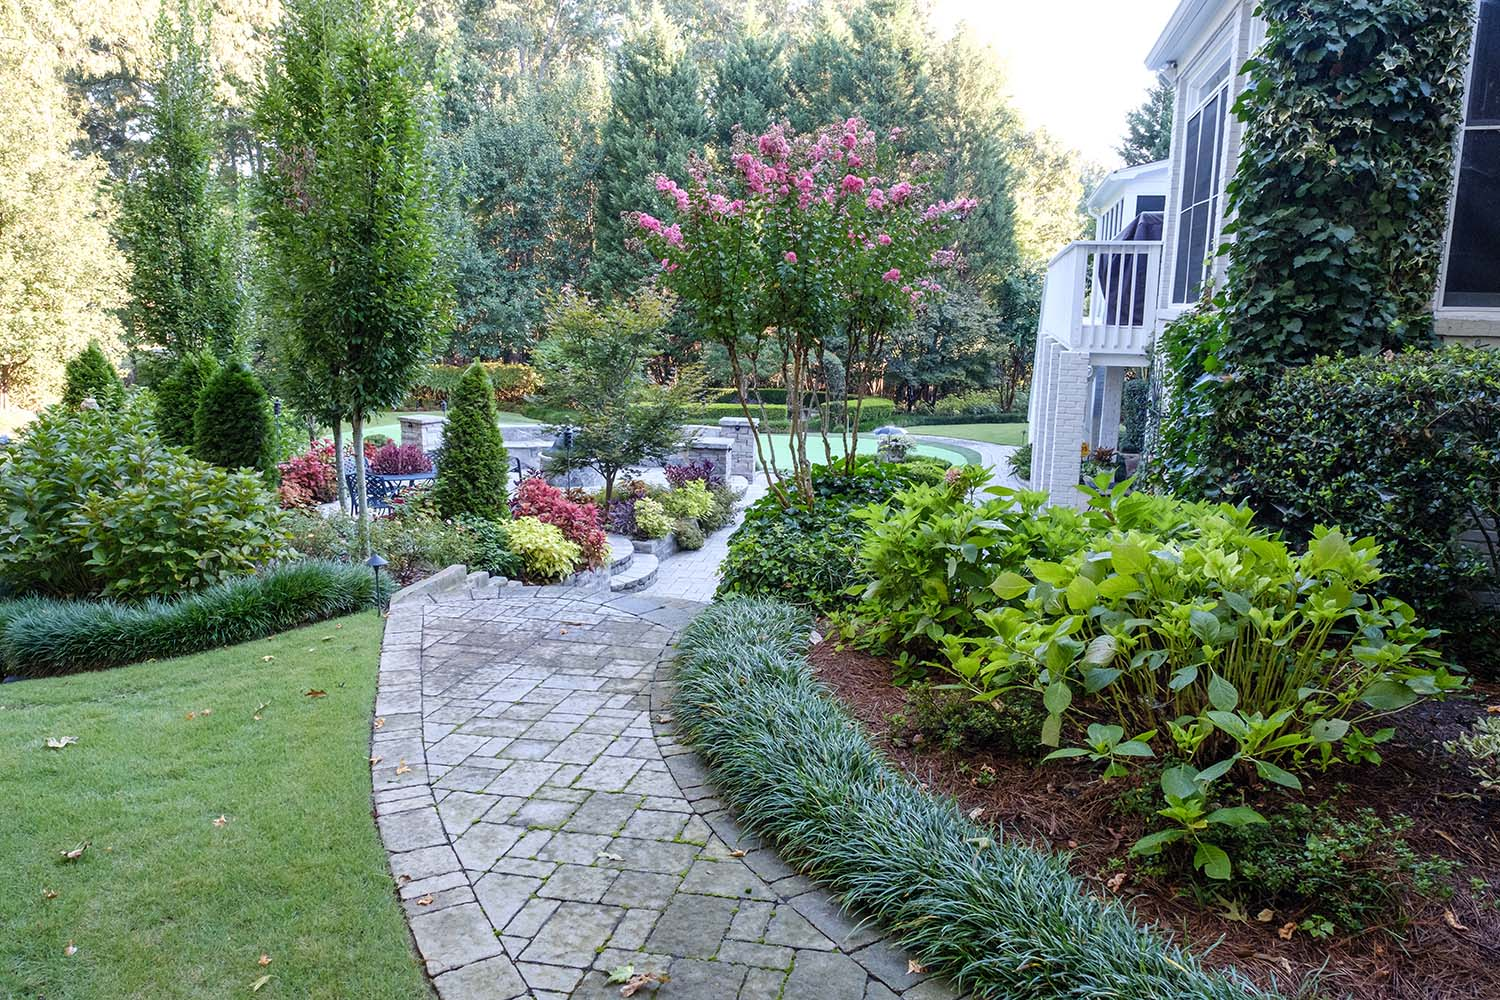 Landscaping - Masterful landscape installations